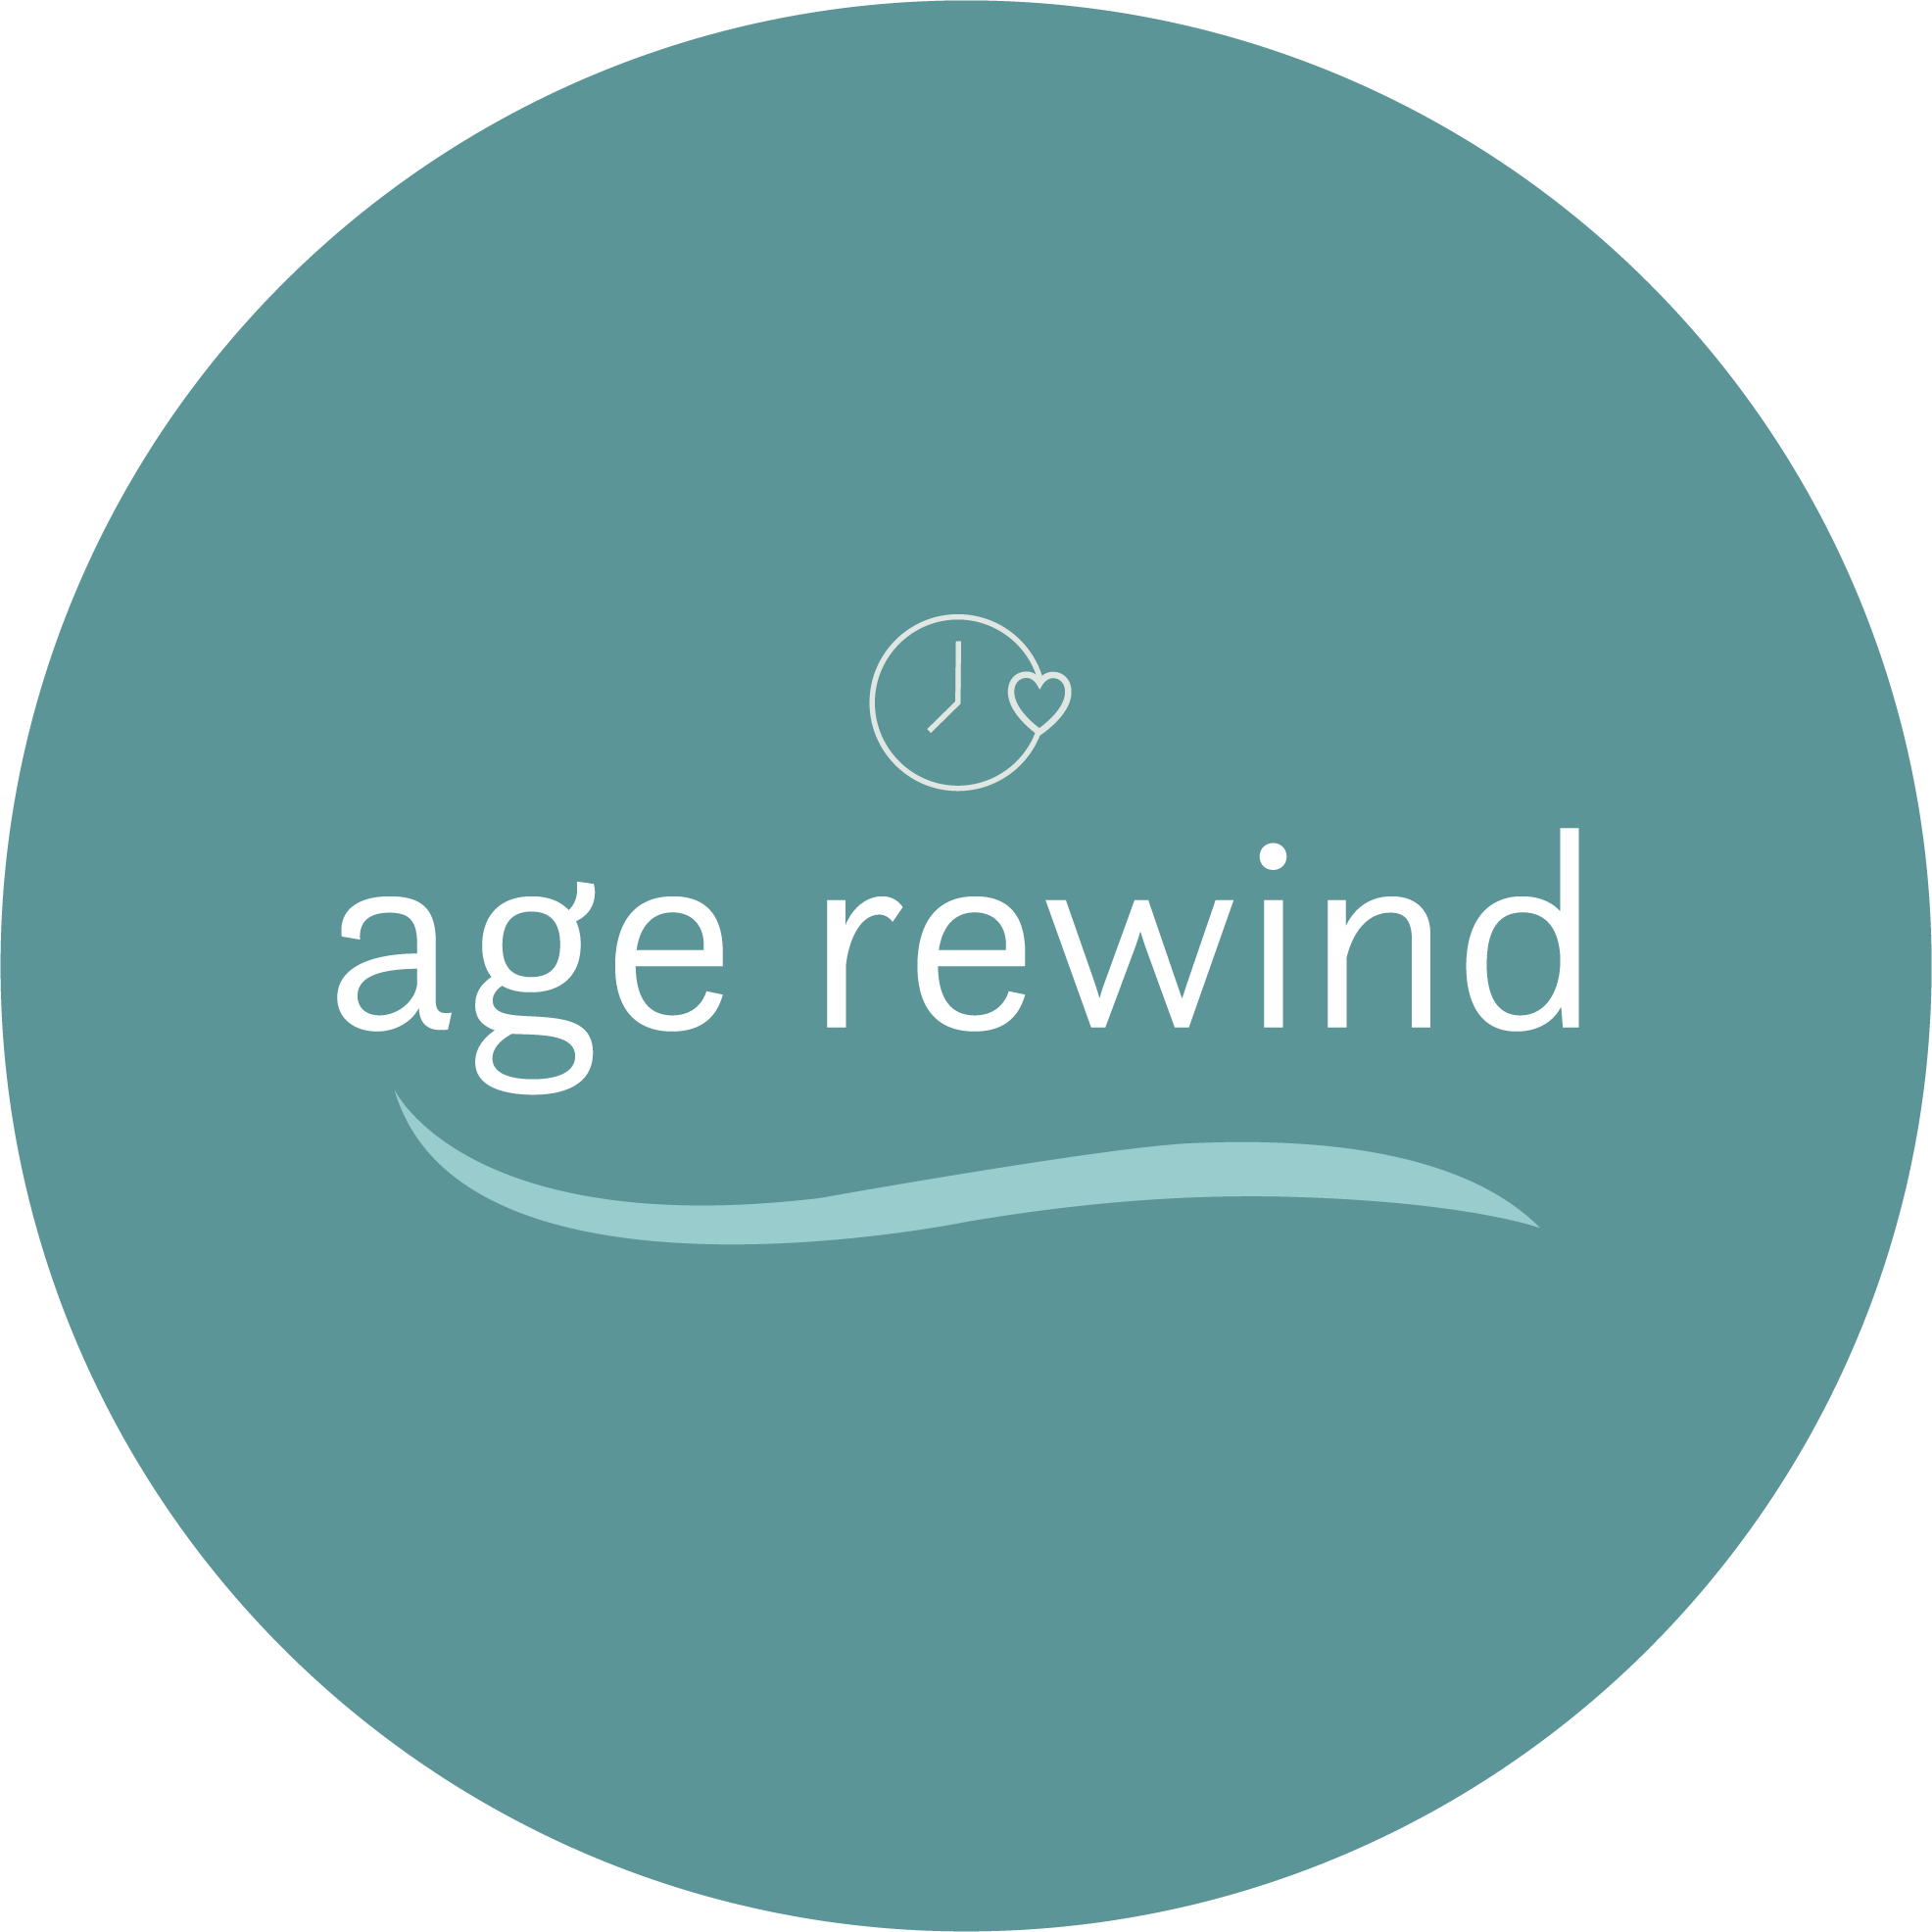 age-rewind 2.png